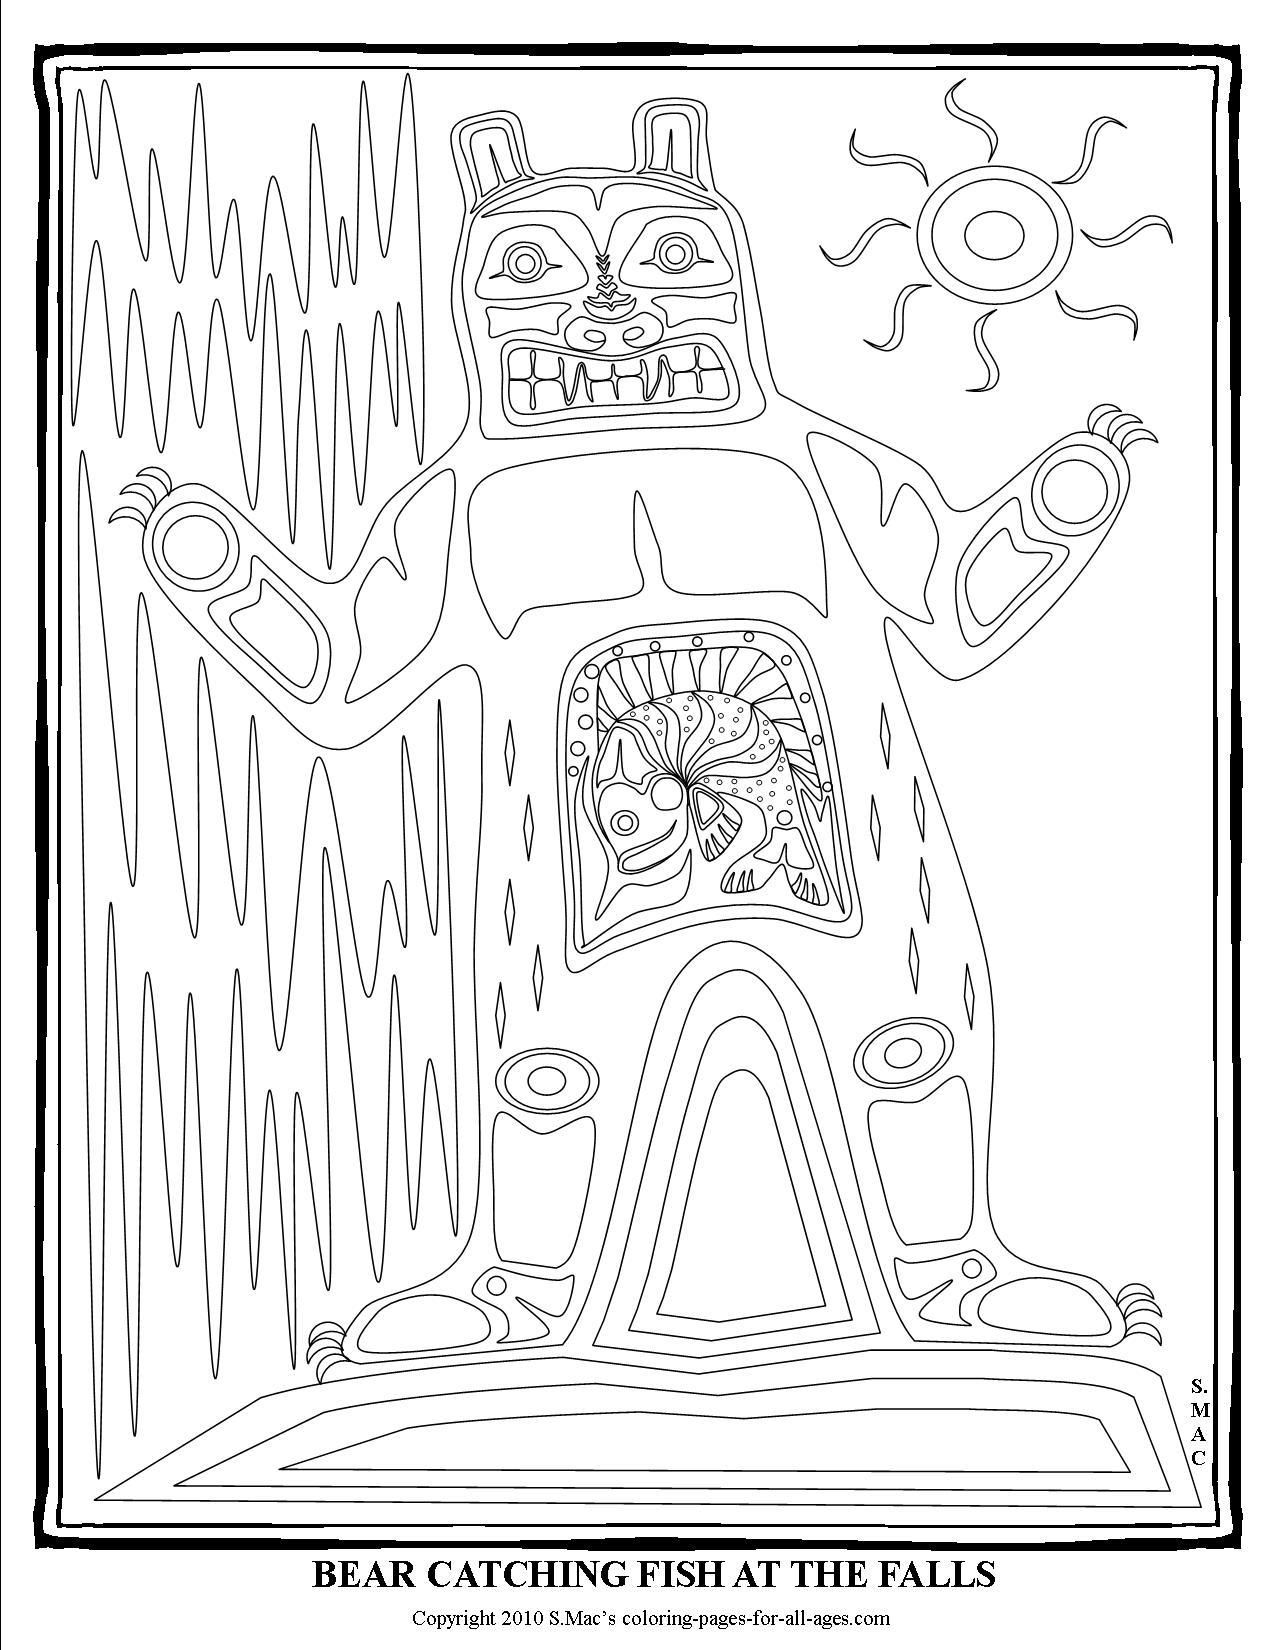 S mac coloring pages - S Mac S Bear At The Falls Coloring Page